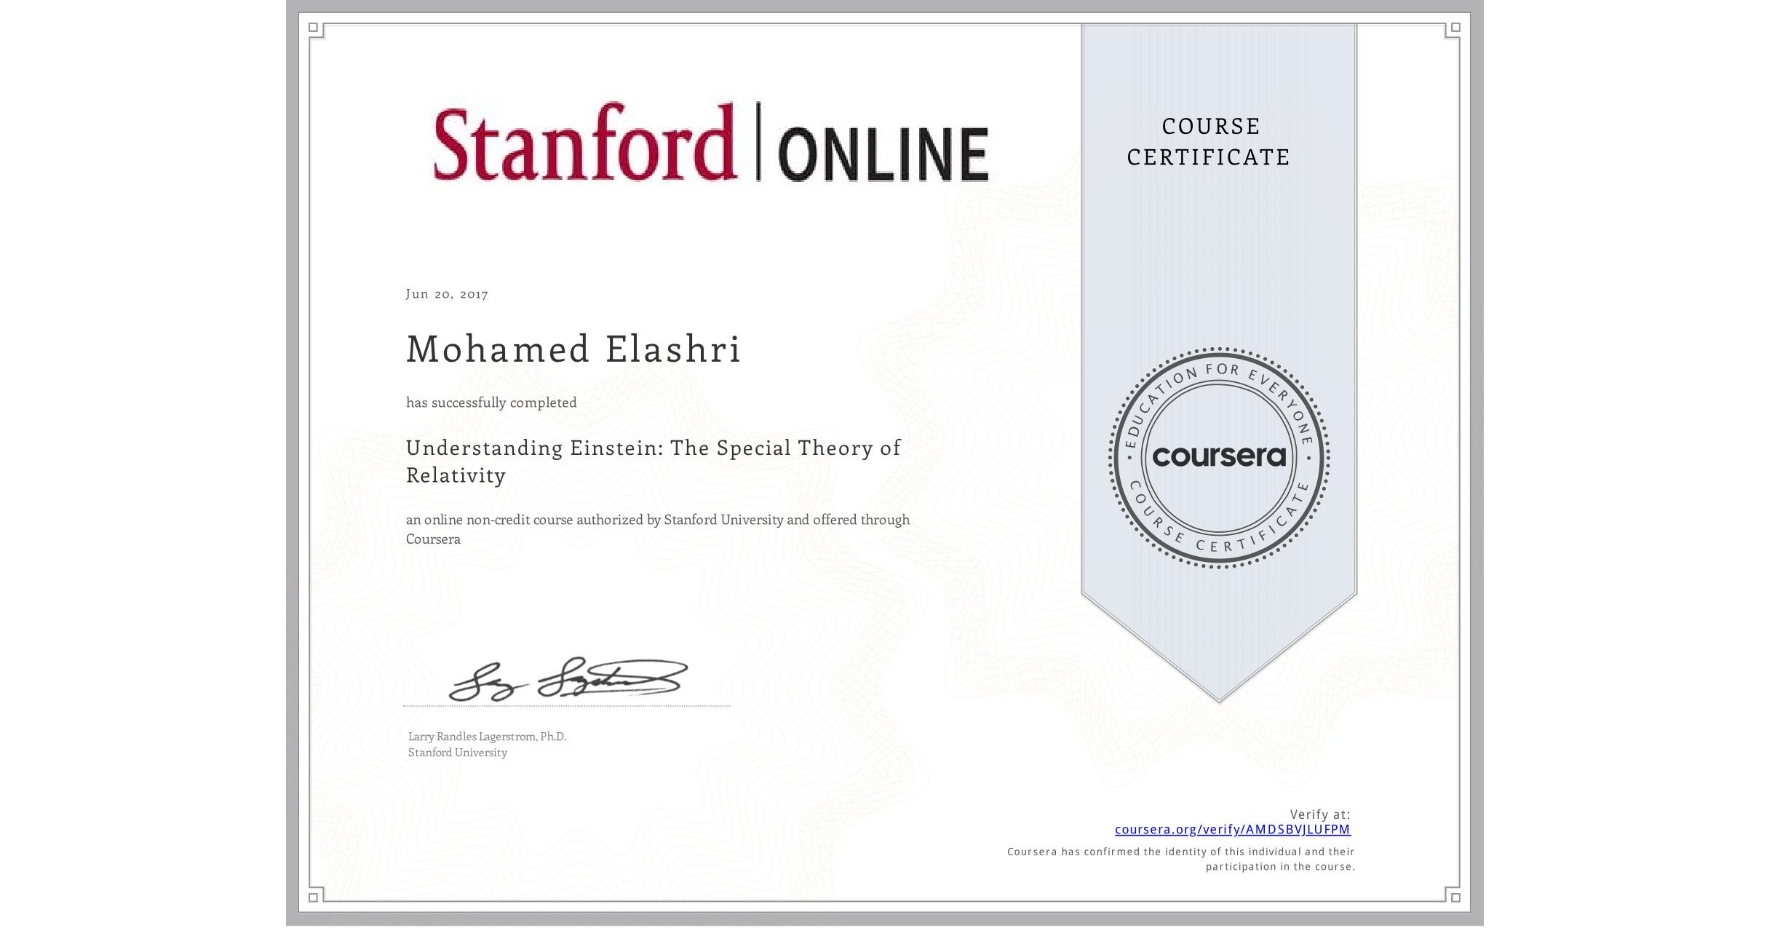 View certificate for Mohamed Elashri, Understanding Einstein: The Special Theory of Relativity, an online non-credit course authorized by Stanford University and offered through Coursera